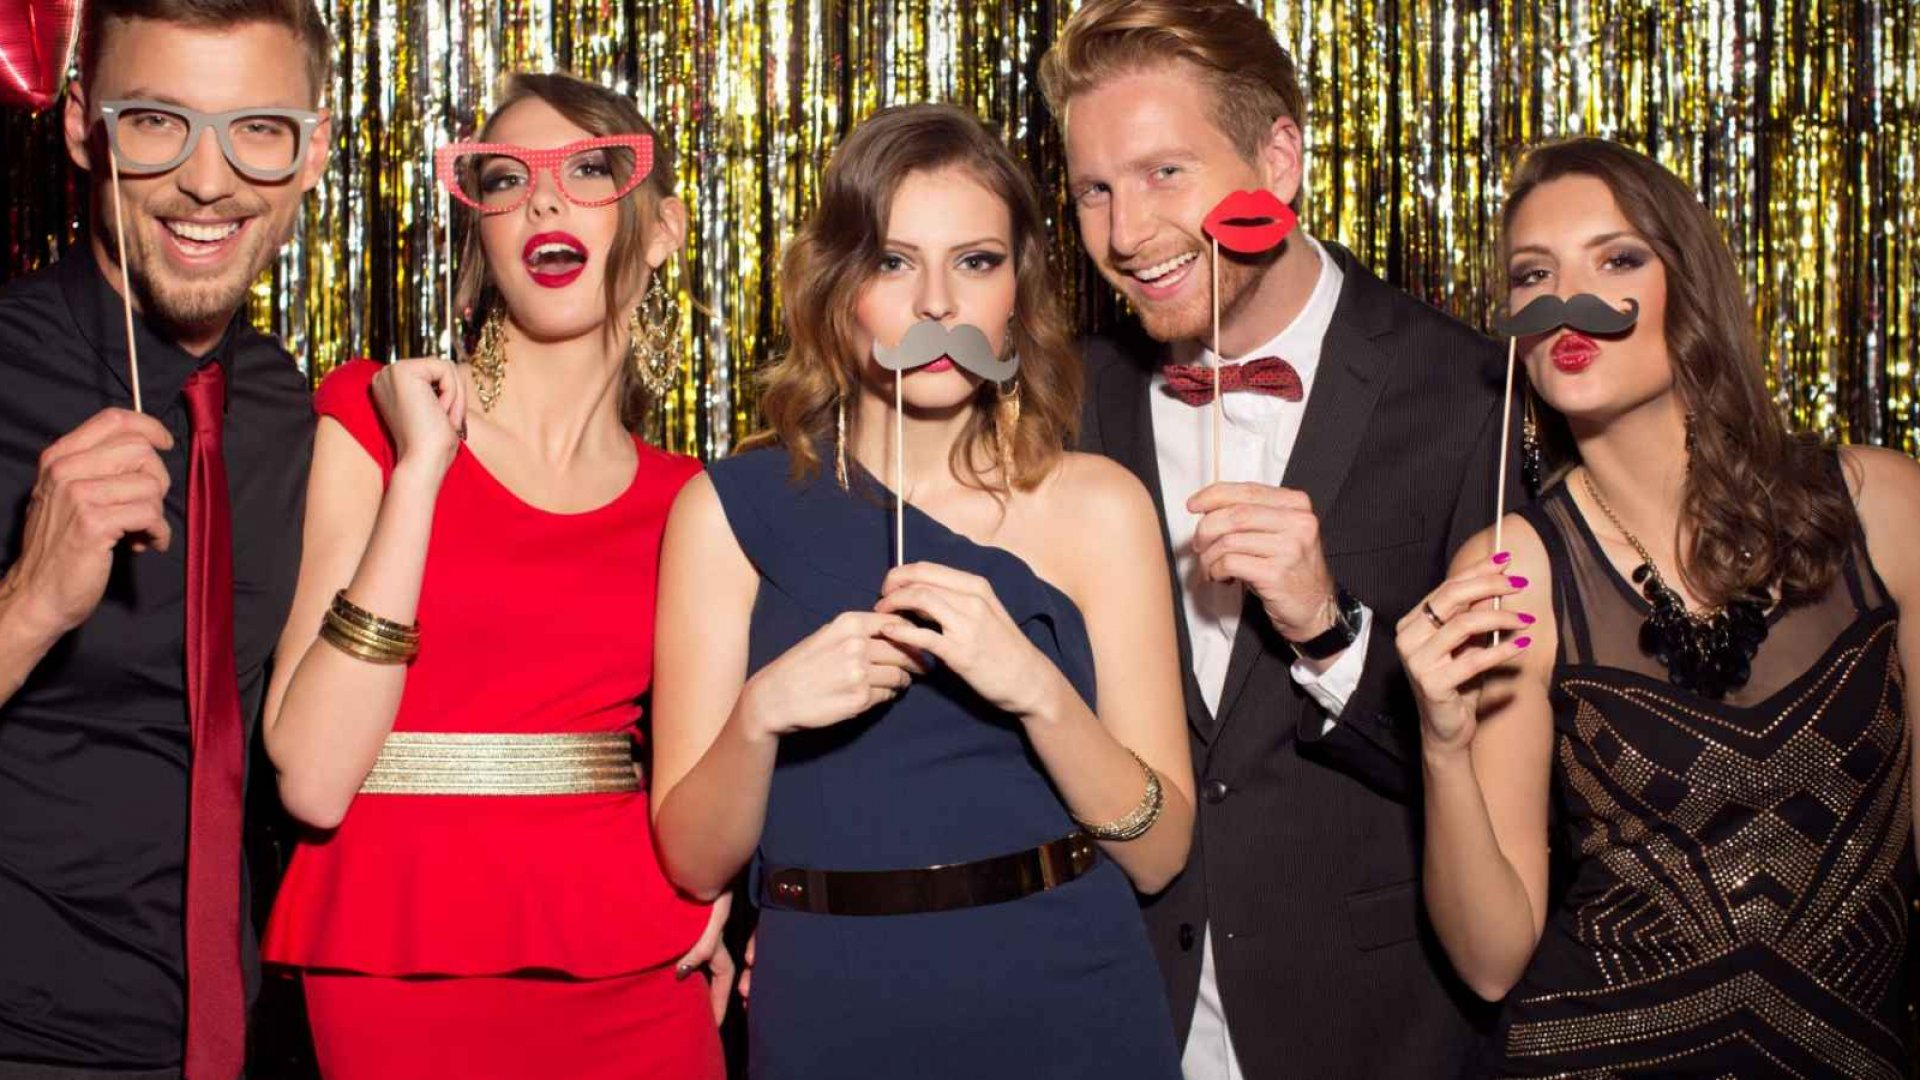 How to Build Your Own Photo Booth for an Event